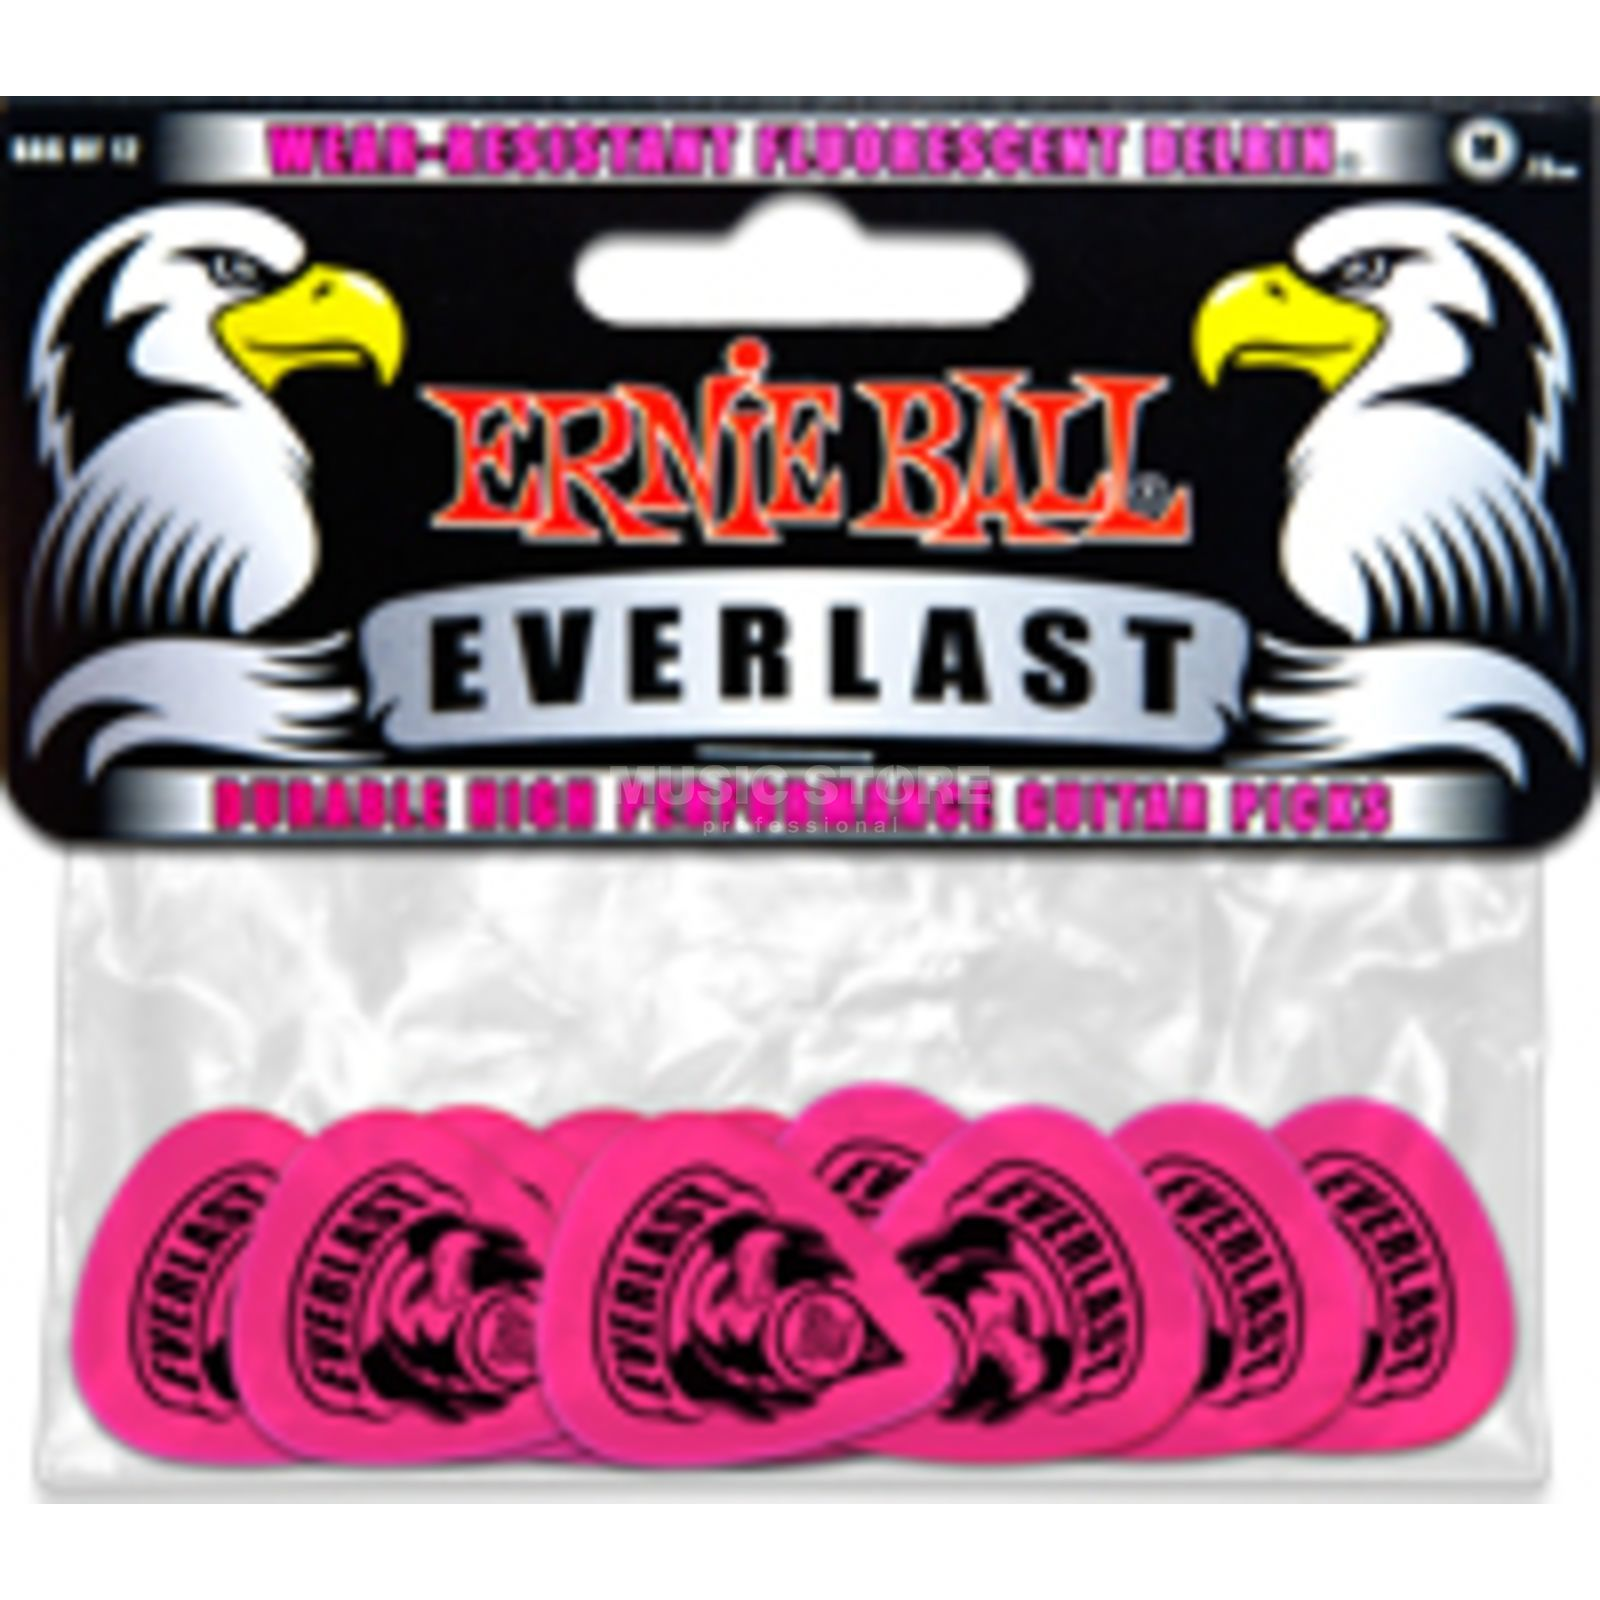 Ernie Ball EB9189 Médiators Everlast Medium Pink lot de 12 Image du produit